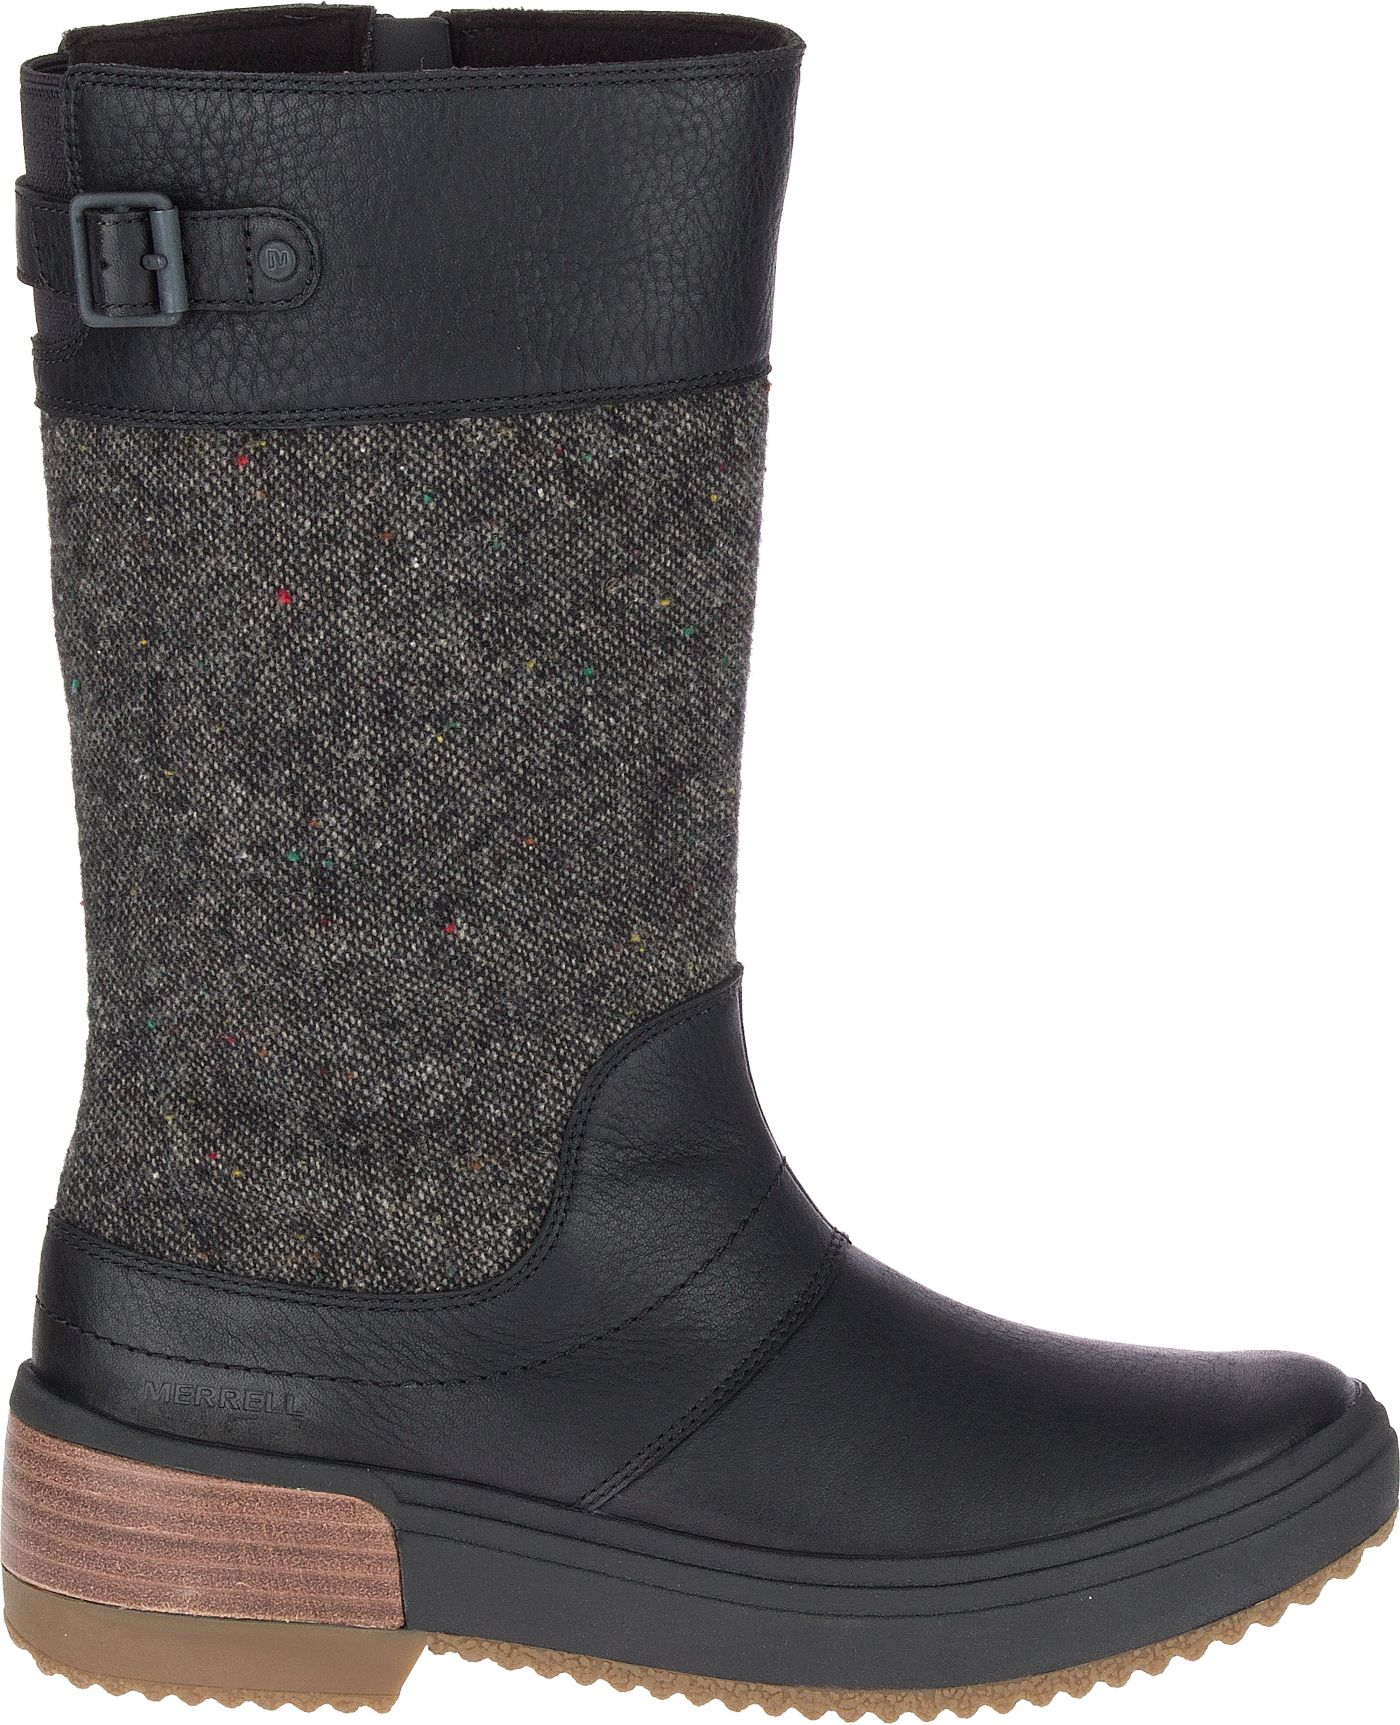 Merrell Women's Haven Tall Buckle Waterproof Boots